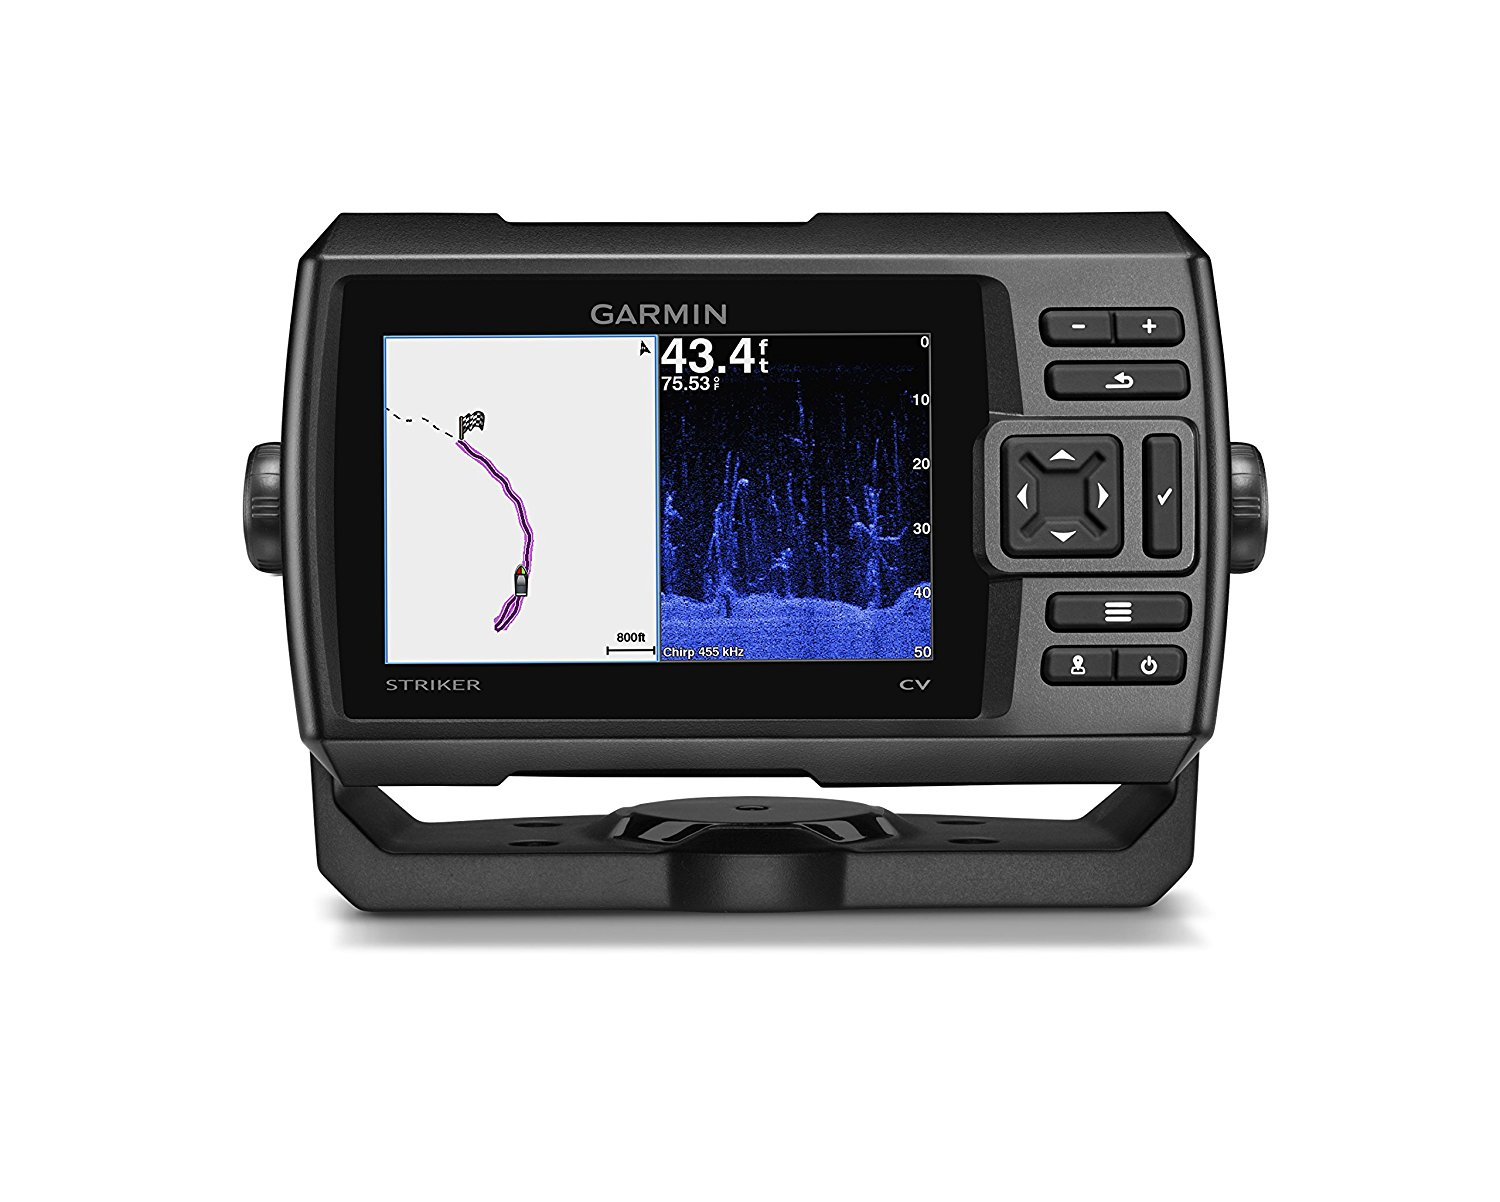 GarminStriker5cv garmin striker 5cv review fishfinders info garmin striker 7sv wiring diagram at bayanpartner.co